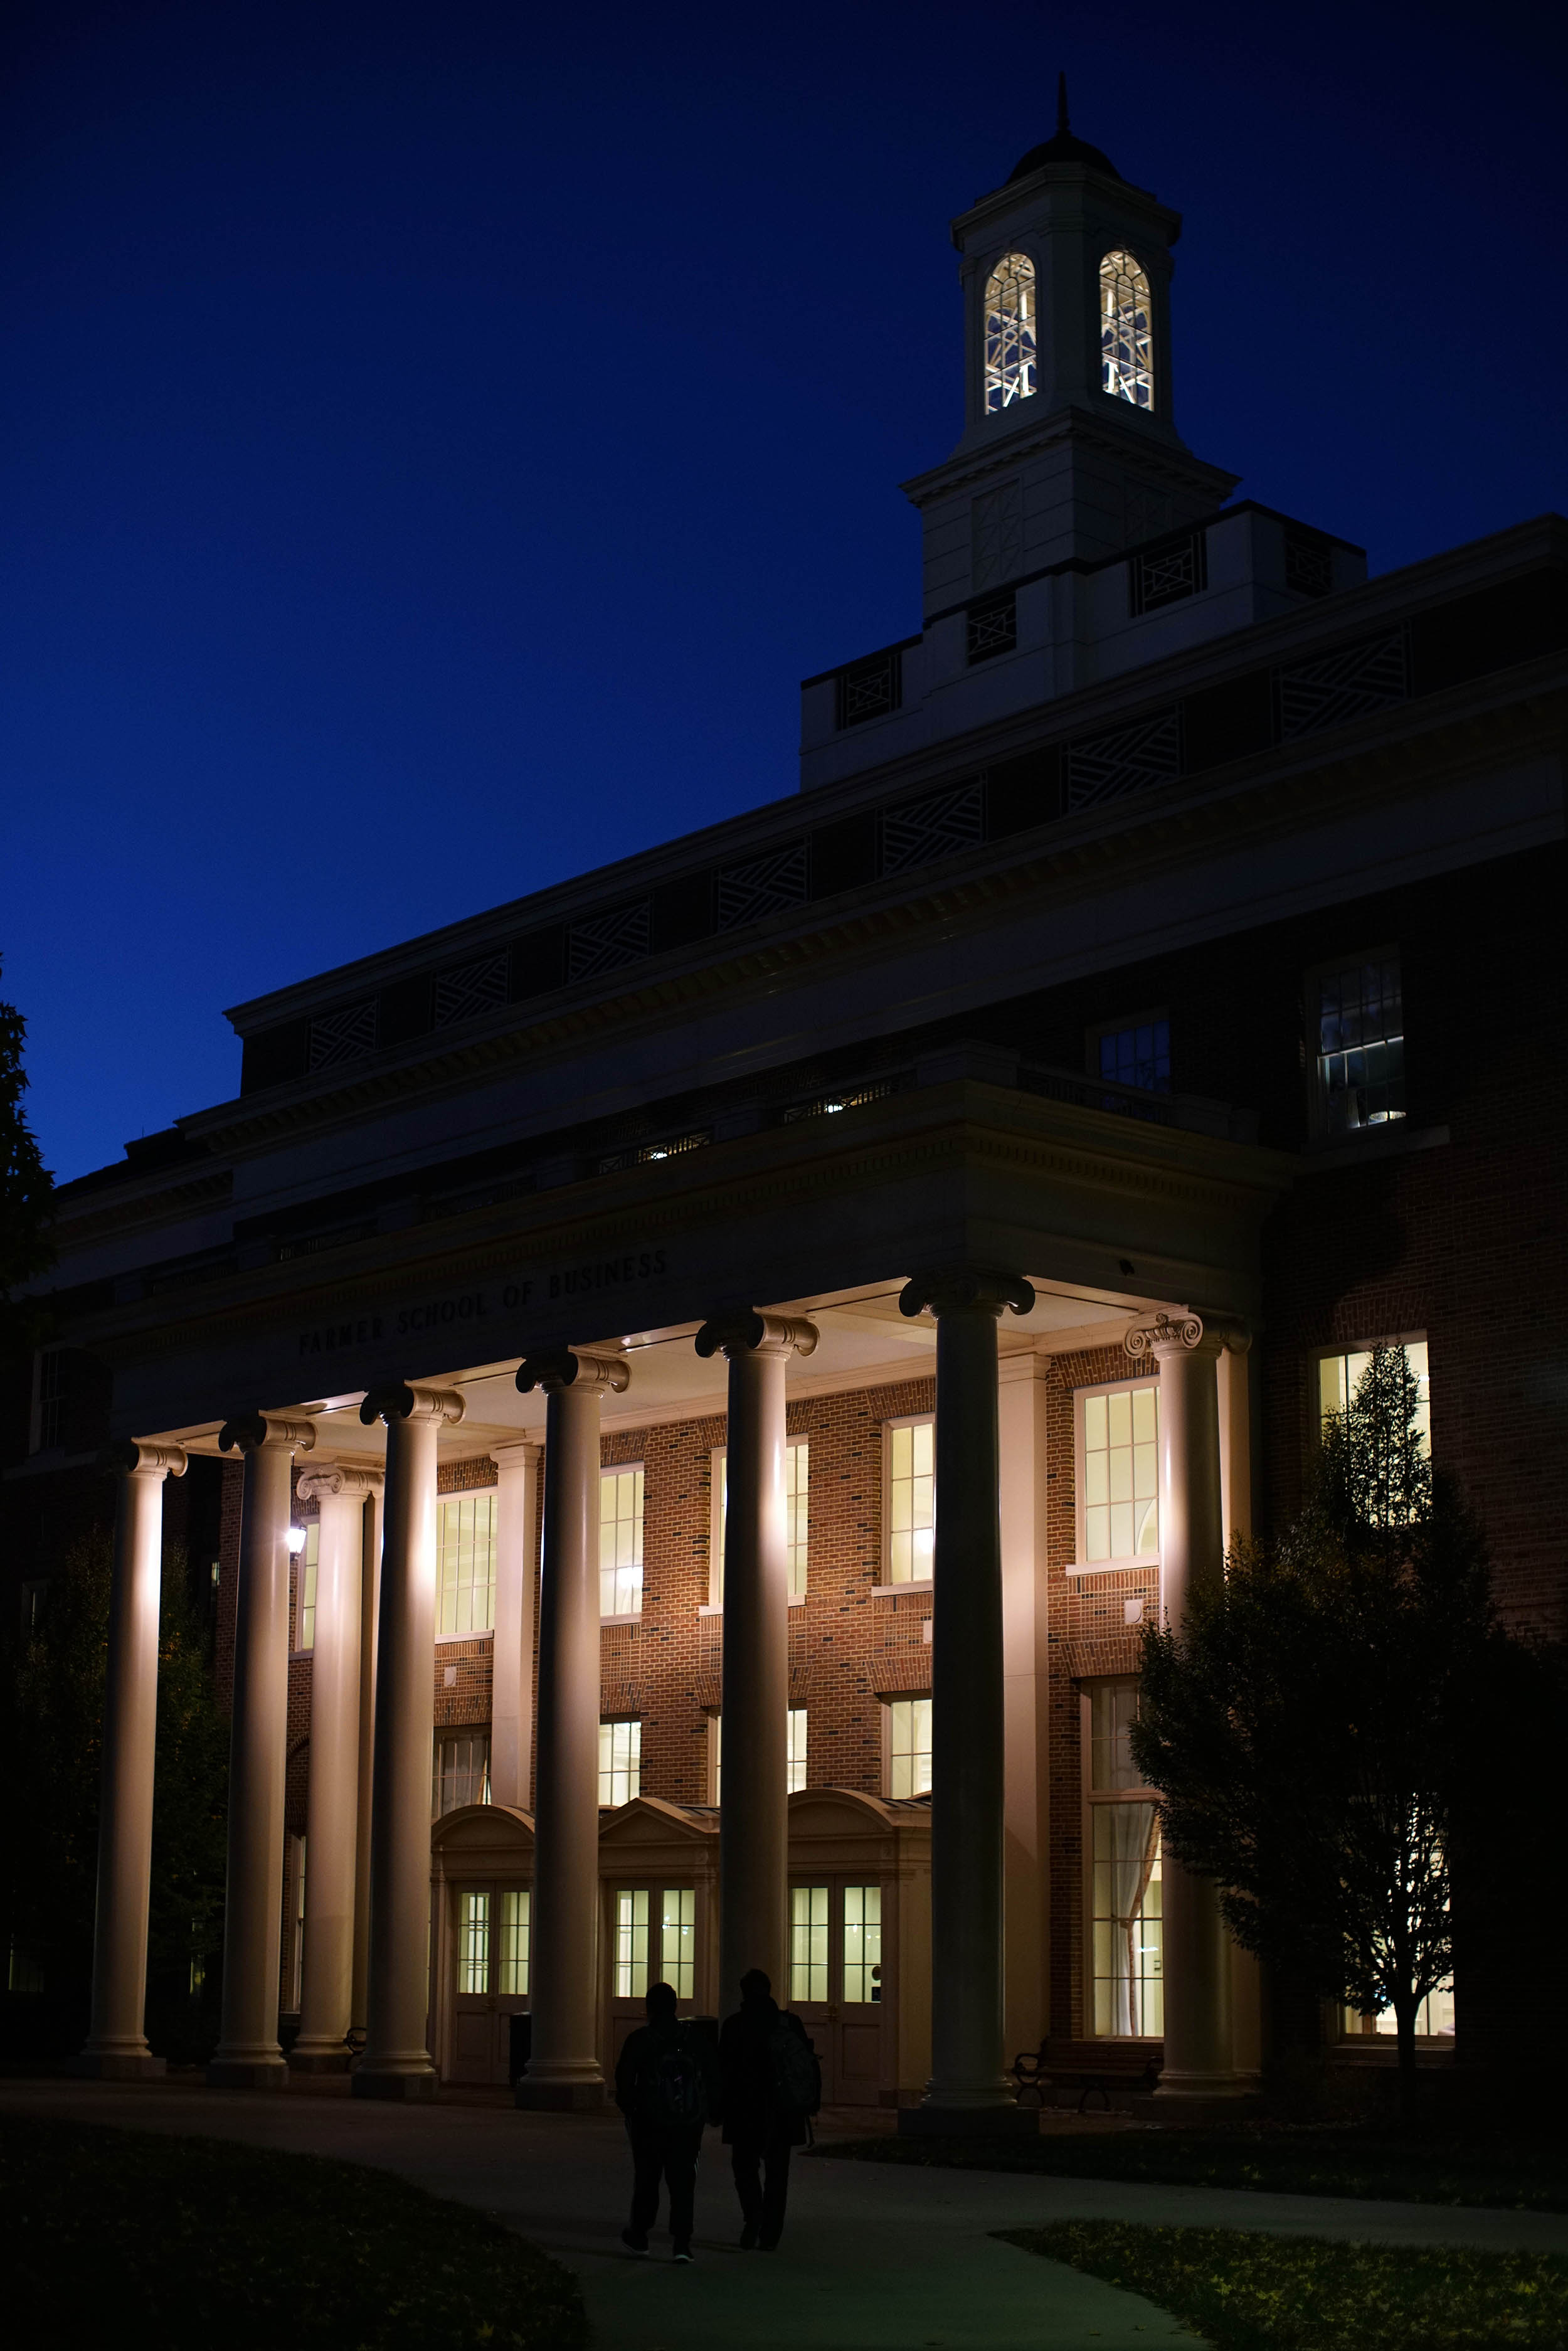 Late evening view of the front of the Farmer School of Business